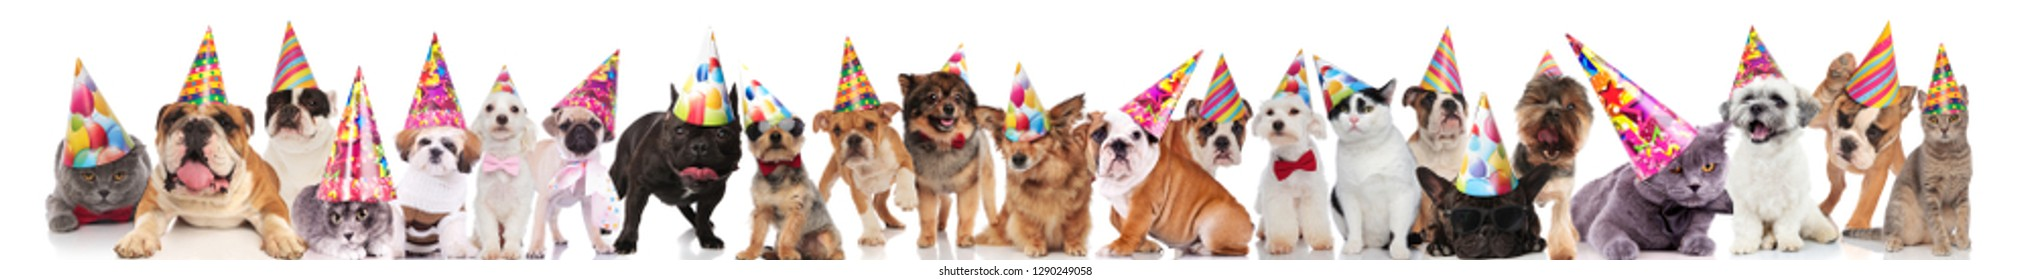 team of many cats and dogs wearing birthday hats while standing, sitting and lying on white background